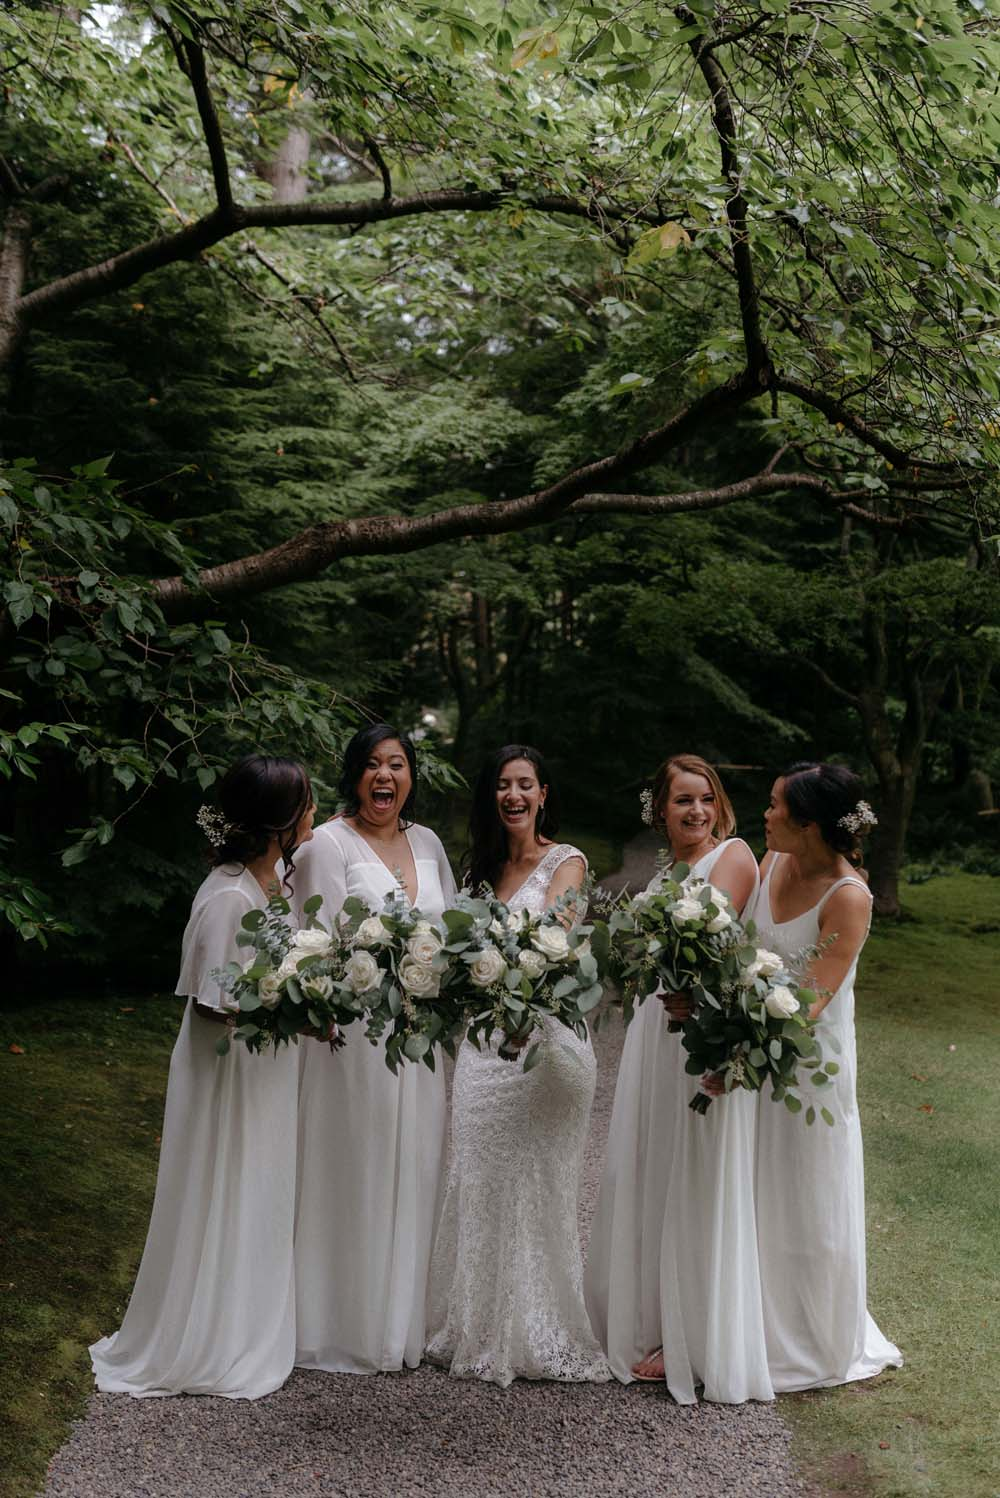 A Multicultural Wedding At The UBC Botanical Garden in Vancouver - bride and bridesmaids